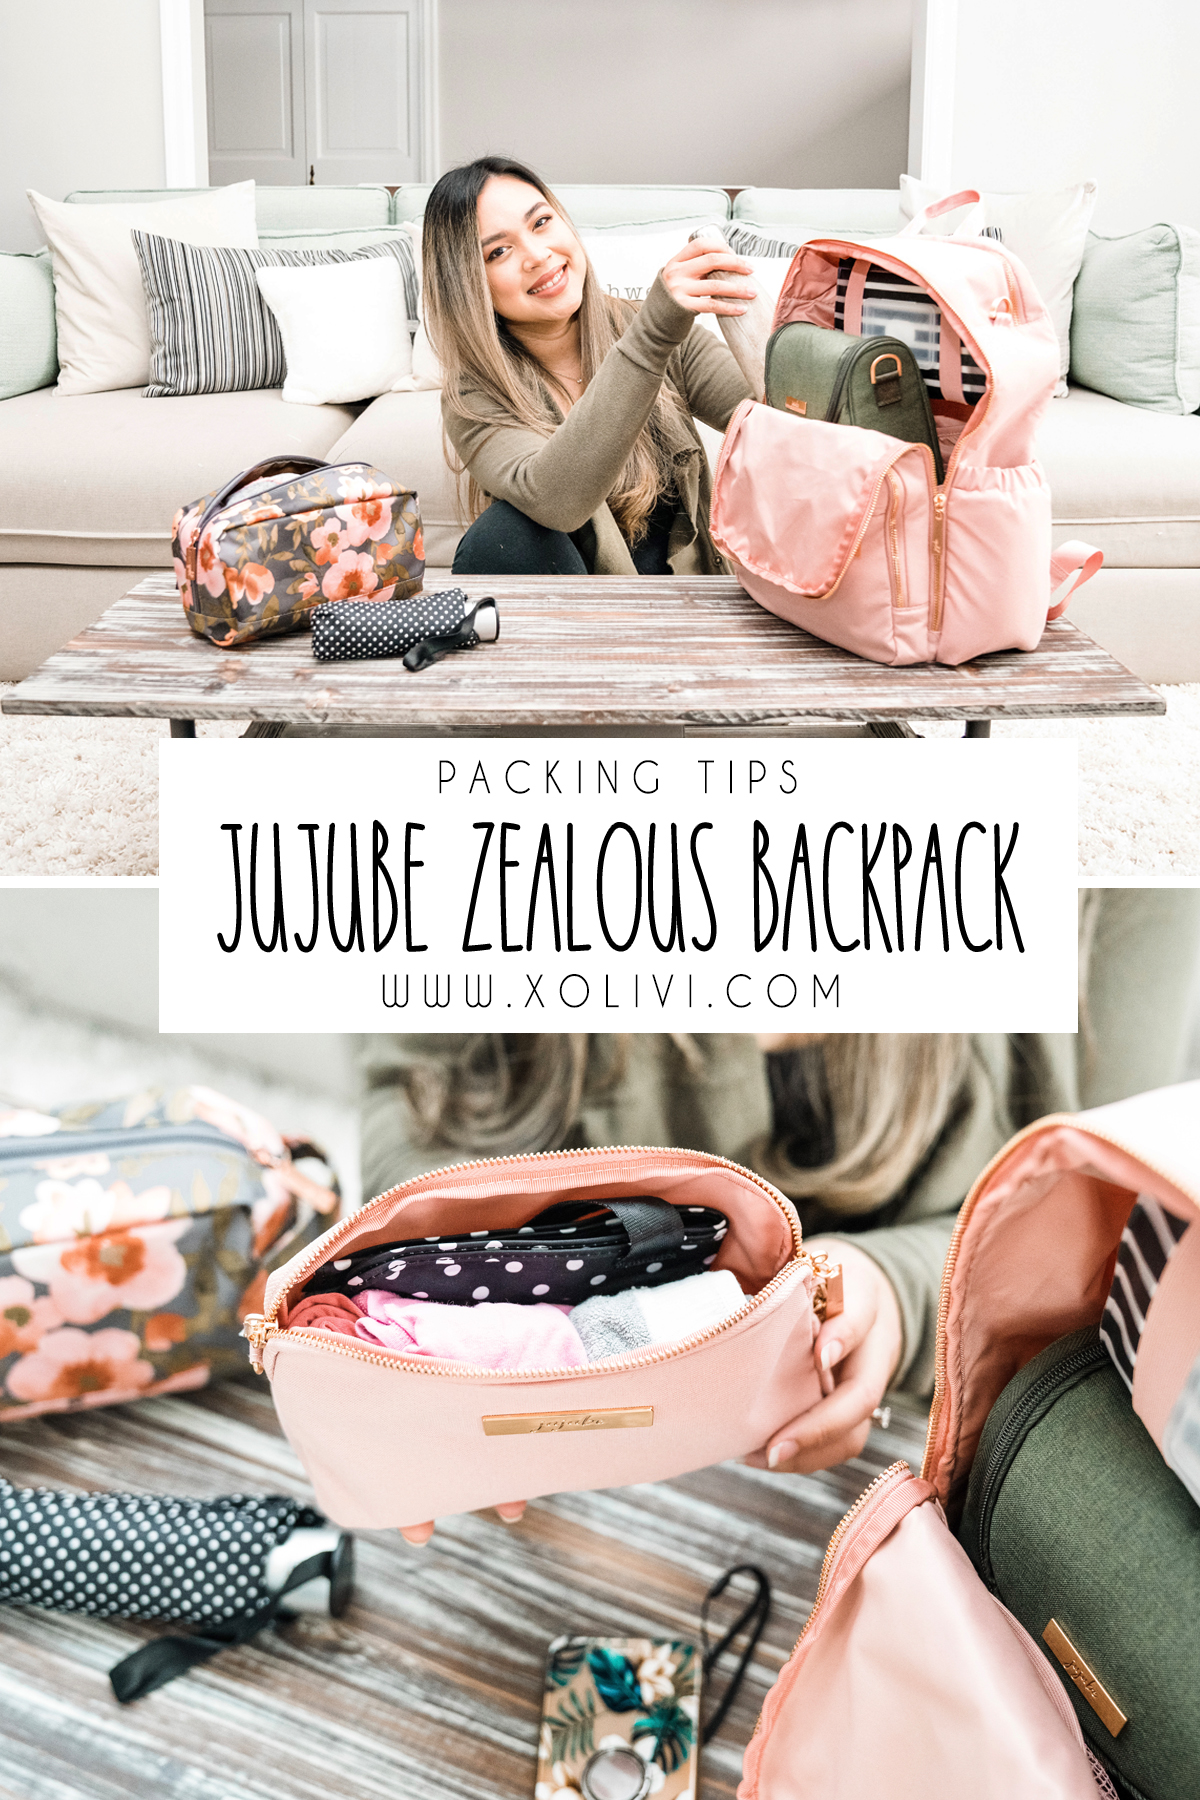 jujube zealous backpack